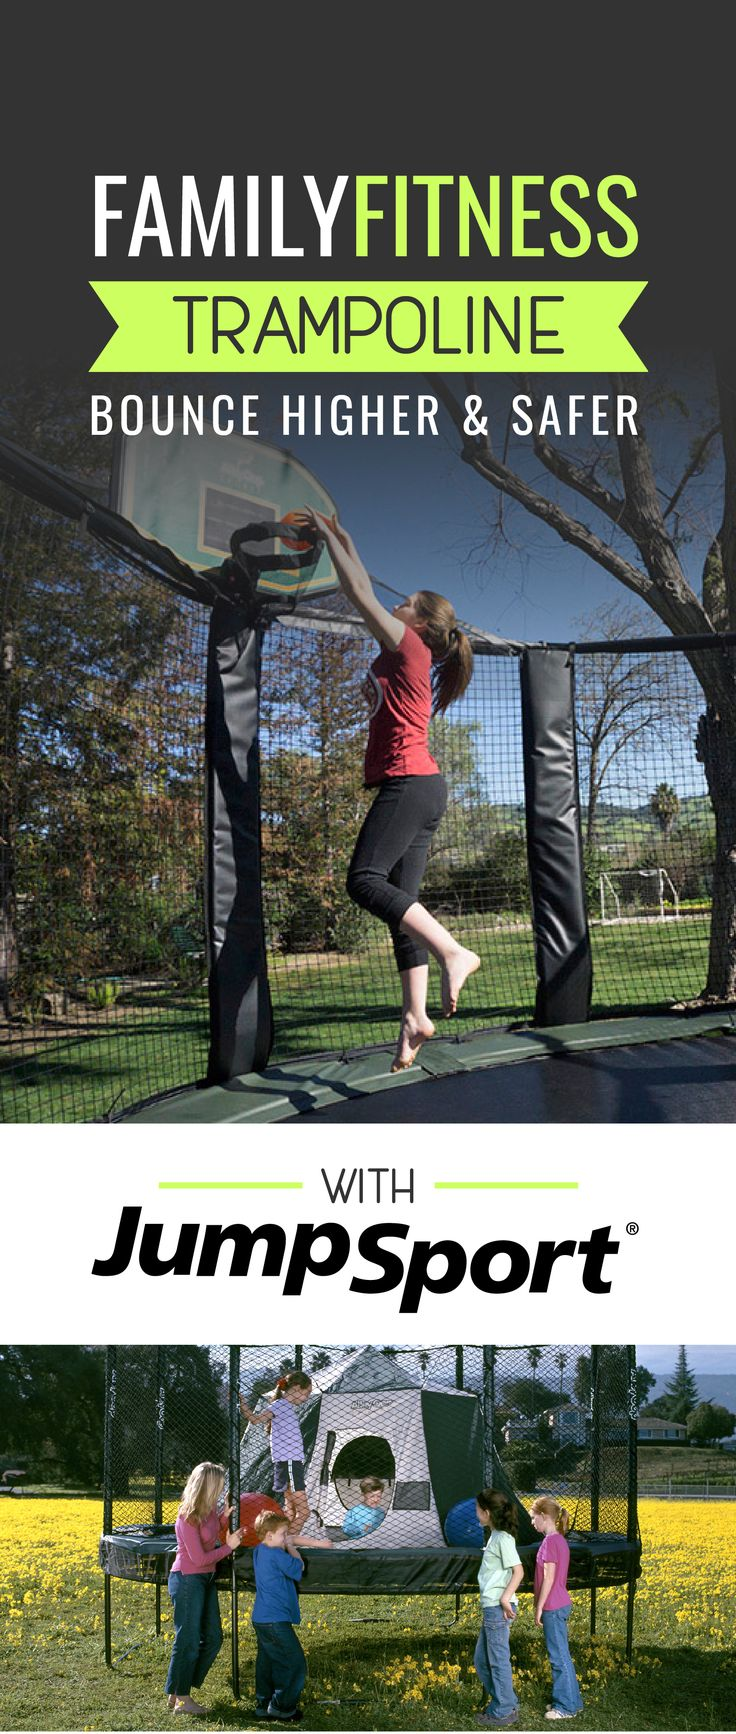 A backyard trampoline for the family is the perfect holiday gift!  Visit: https://www.jumpsport.com/backyard/trampoline-sale  These trampolines are rated the world's safest with double bounce technology and incredible safety features. JumpSport Trampolines are the leading brand for quality and product innovation.  #jumpsport